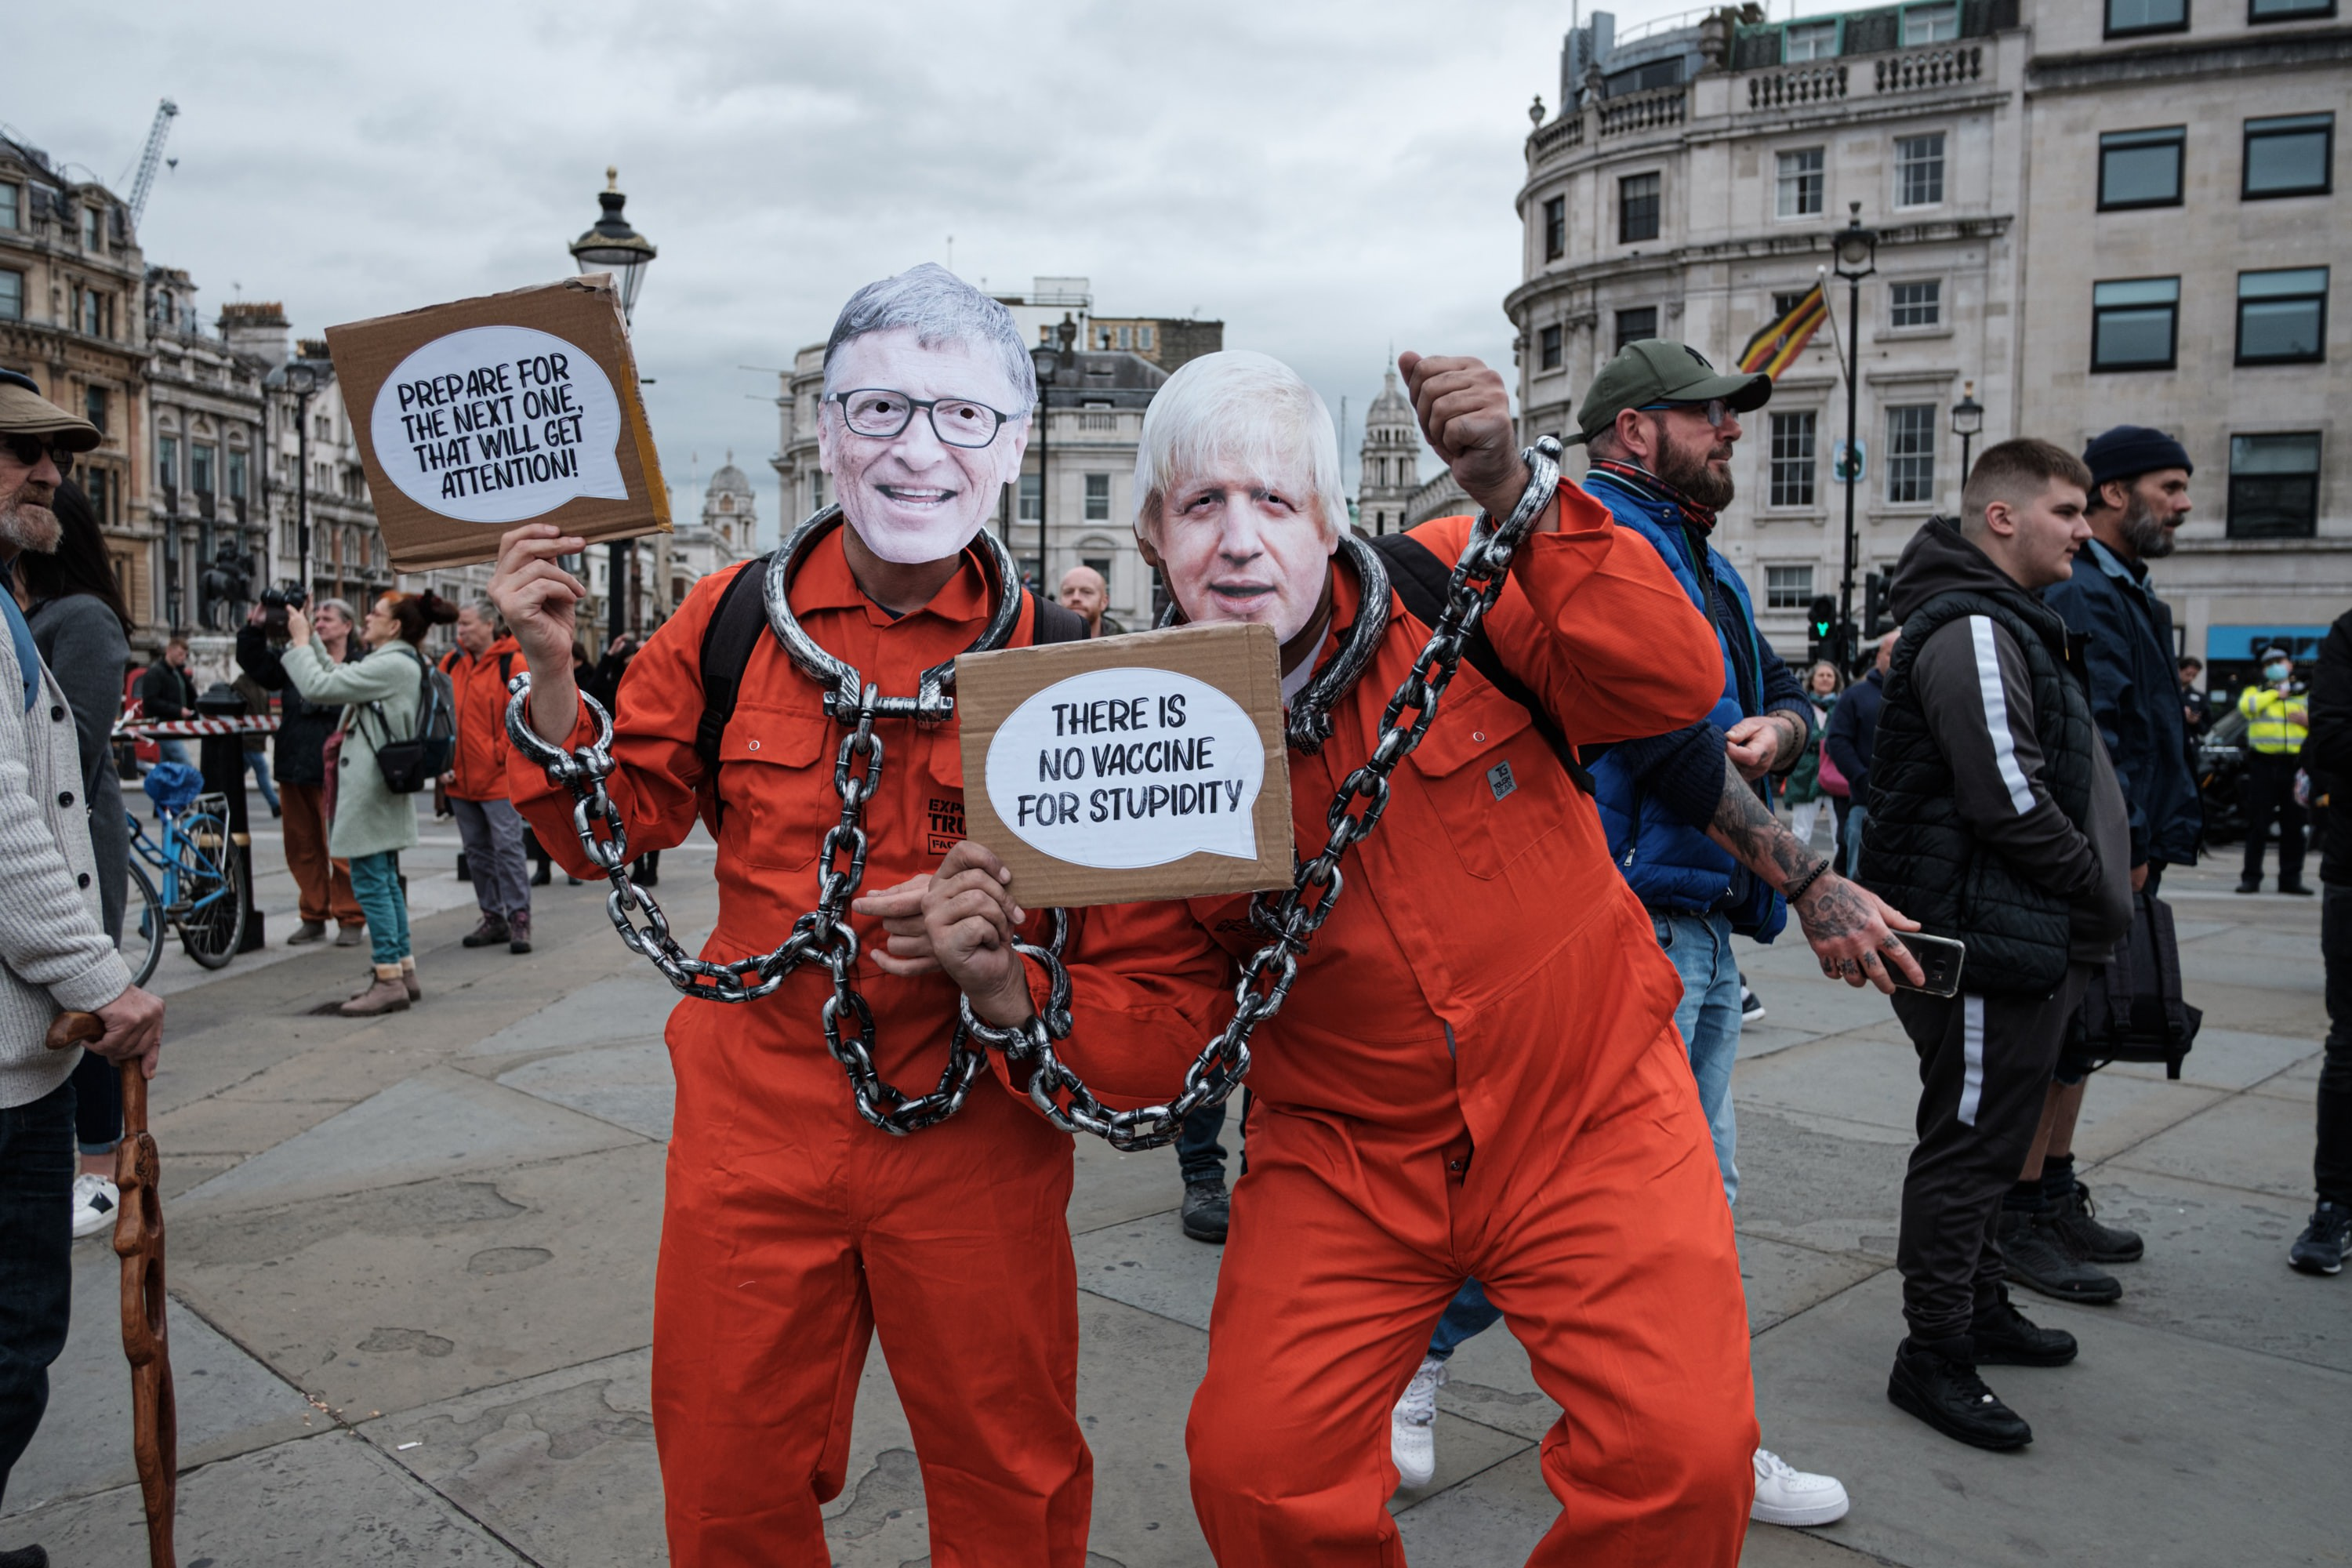 Two people in orange jumpsuits, fake shackles and masks of Boris Johnson and Bill Gates protest against COVID-19 restrictions.